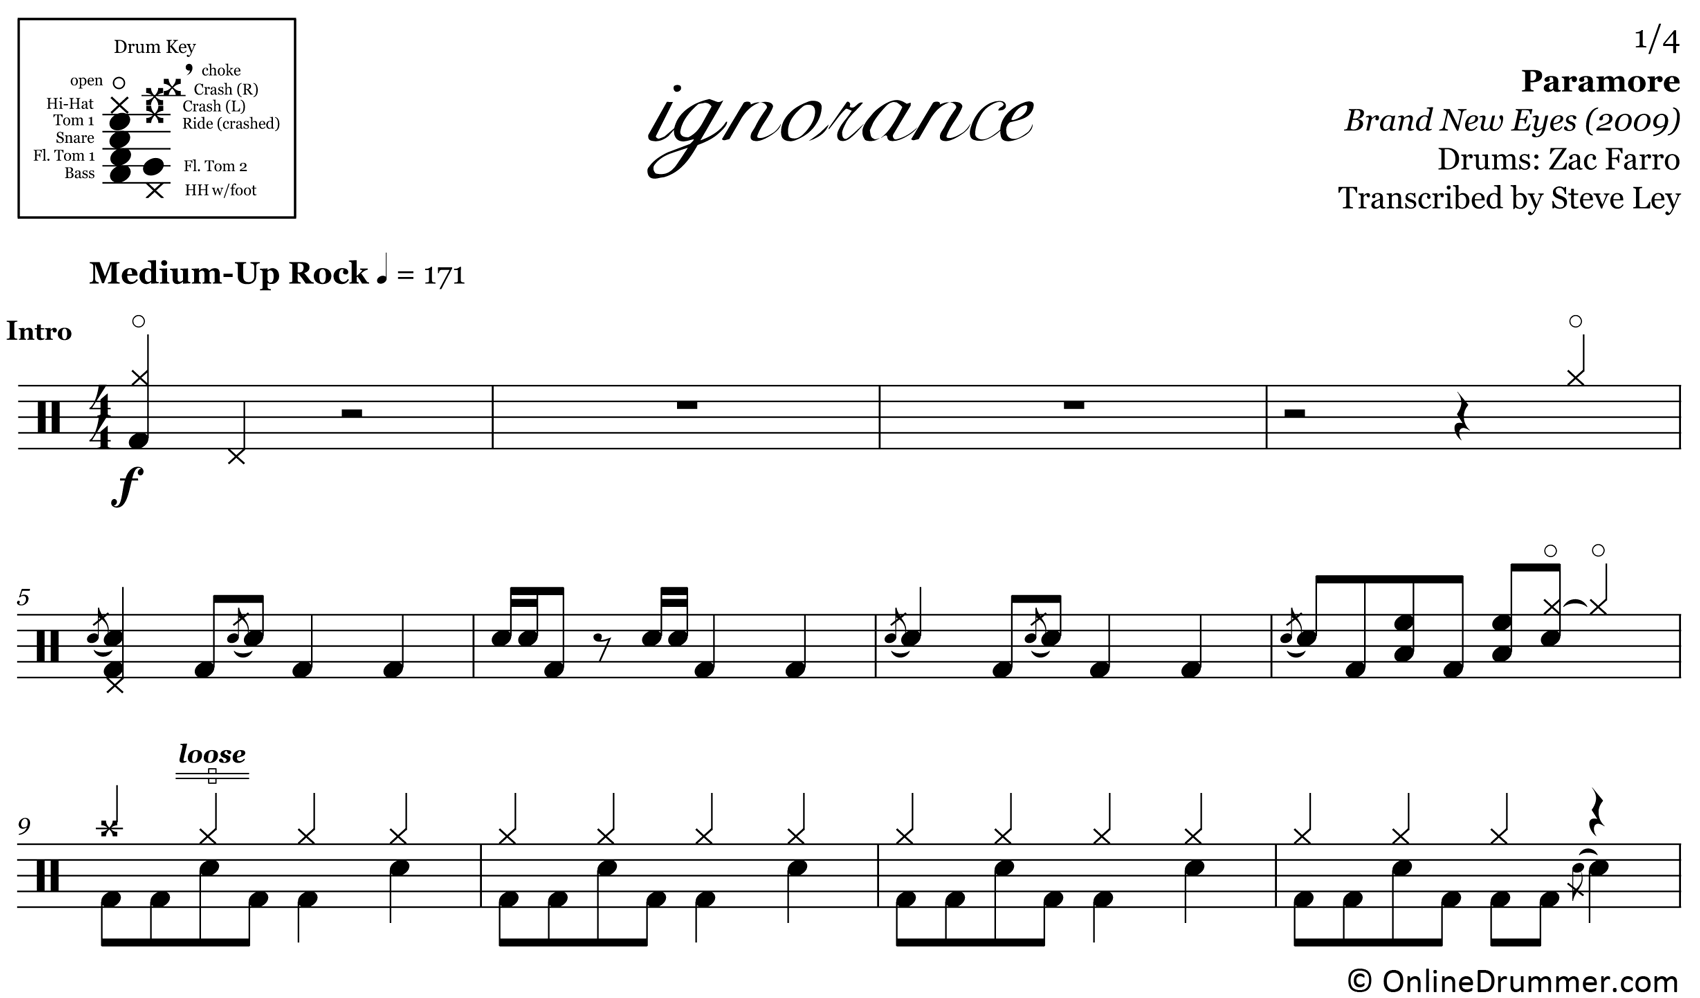 Ignorance - Paramore - Drum Sheet Music